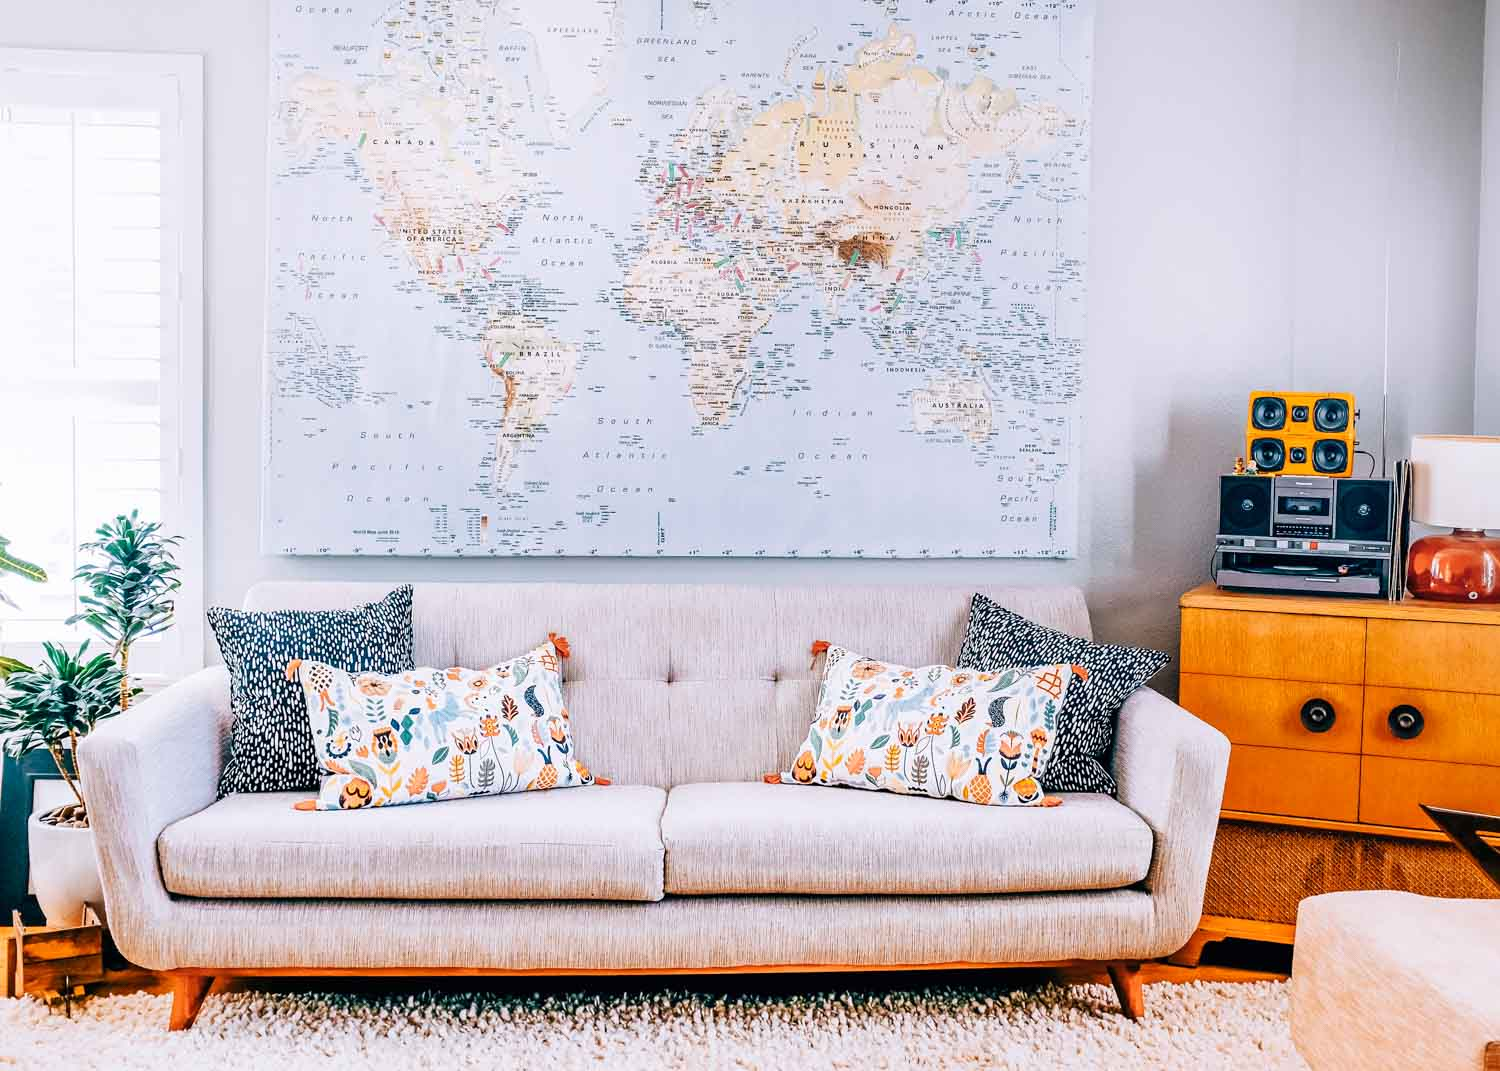 Modern living room couch with world map on wall. To the right is a stereo on top of a wooden console table.